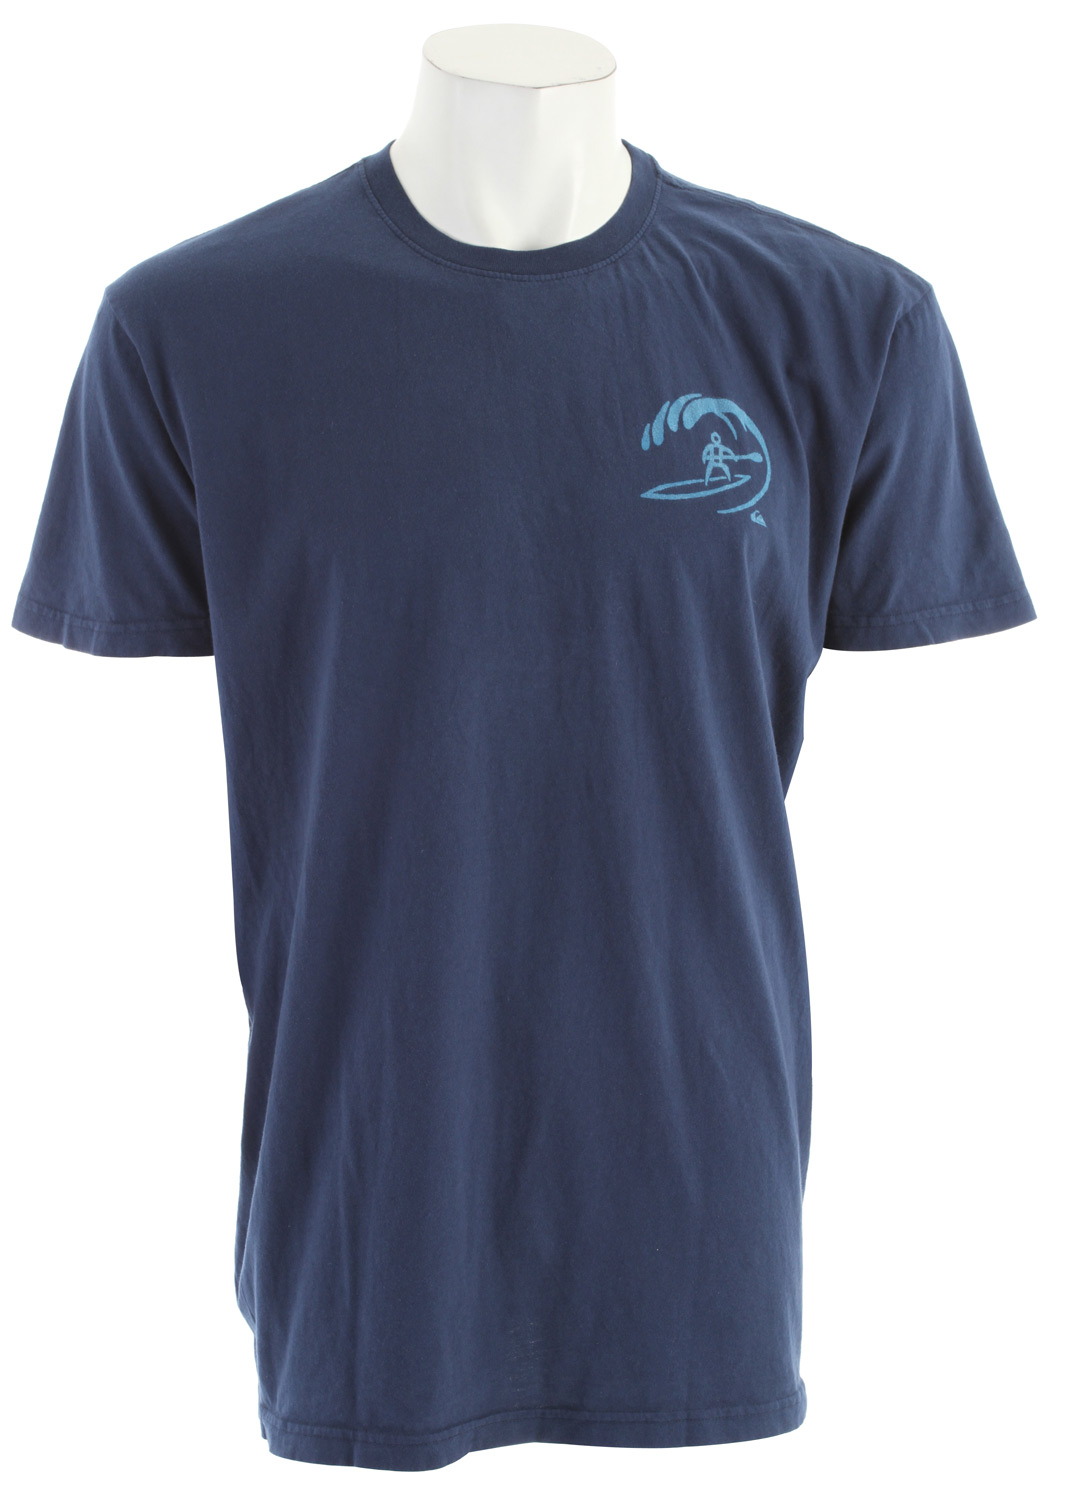 Surf 100% cotton, garment dyed with silicon/enzyme finish. Regular Fit - $22.45